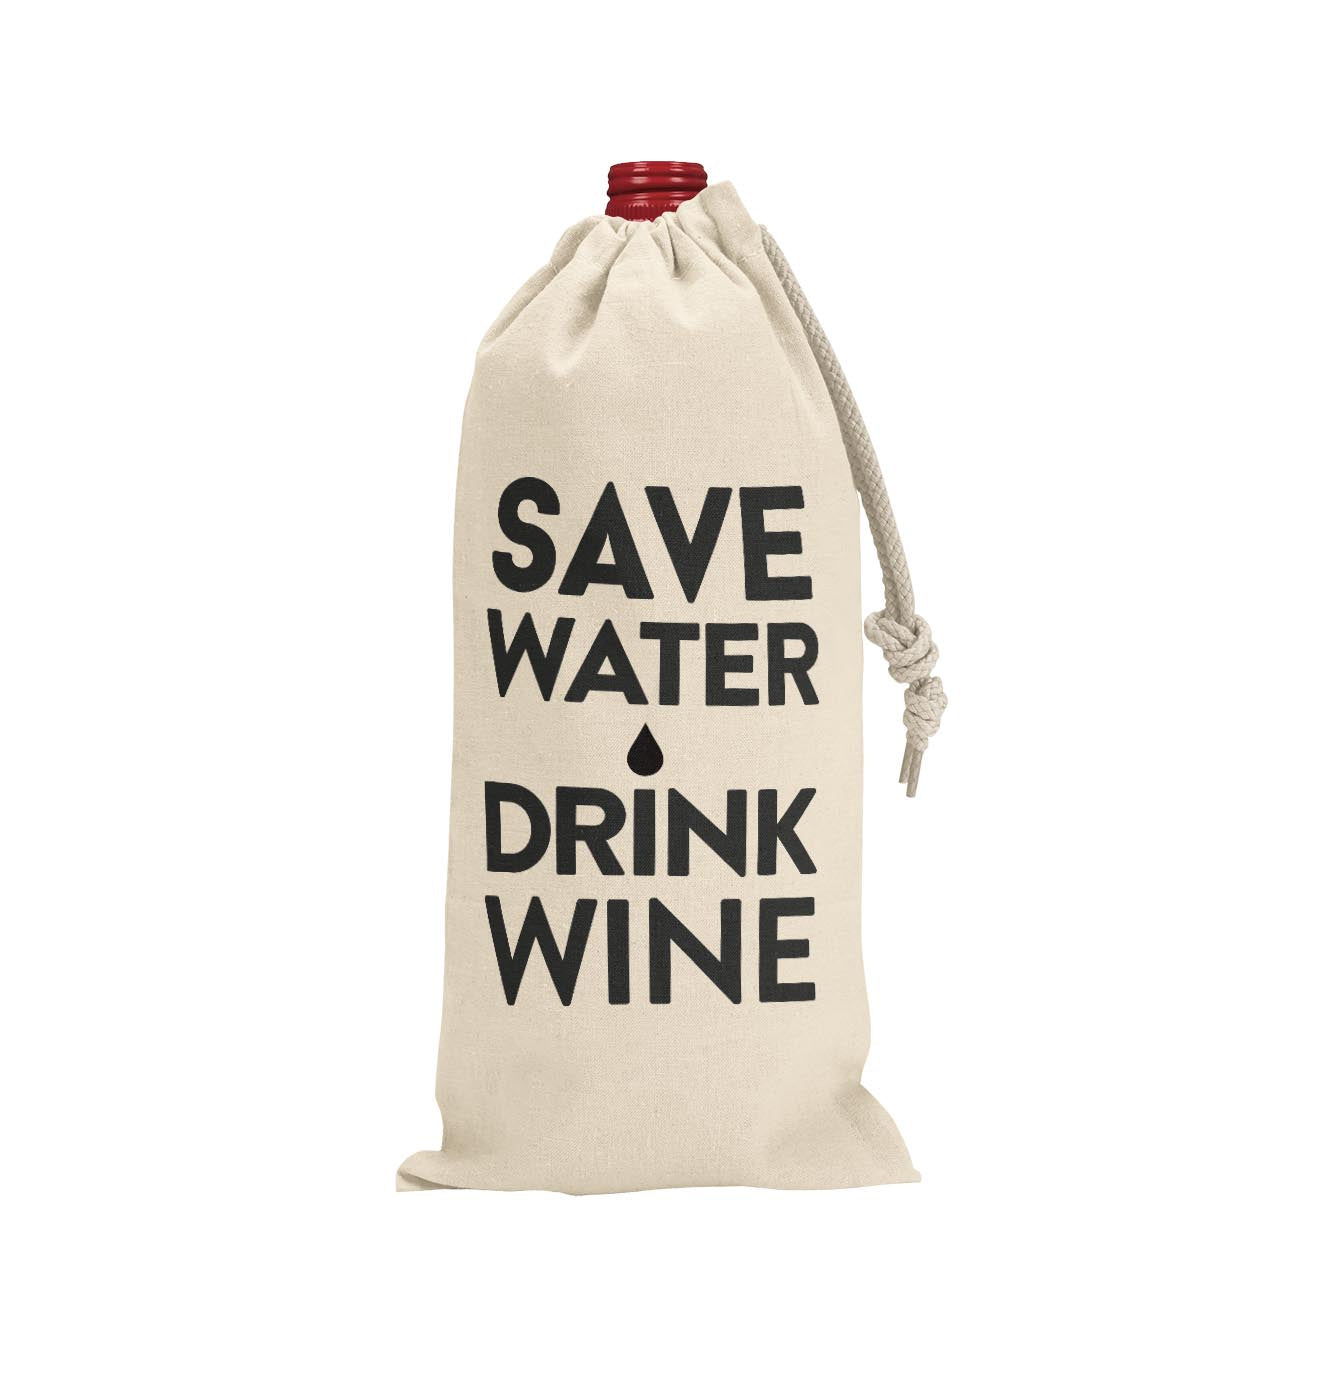 SAVE WATER DRINK WINE WINE BAG - Georgie & Moon